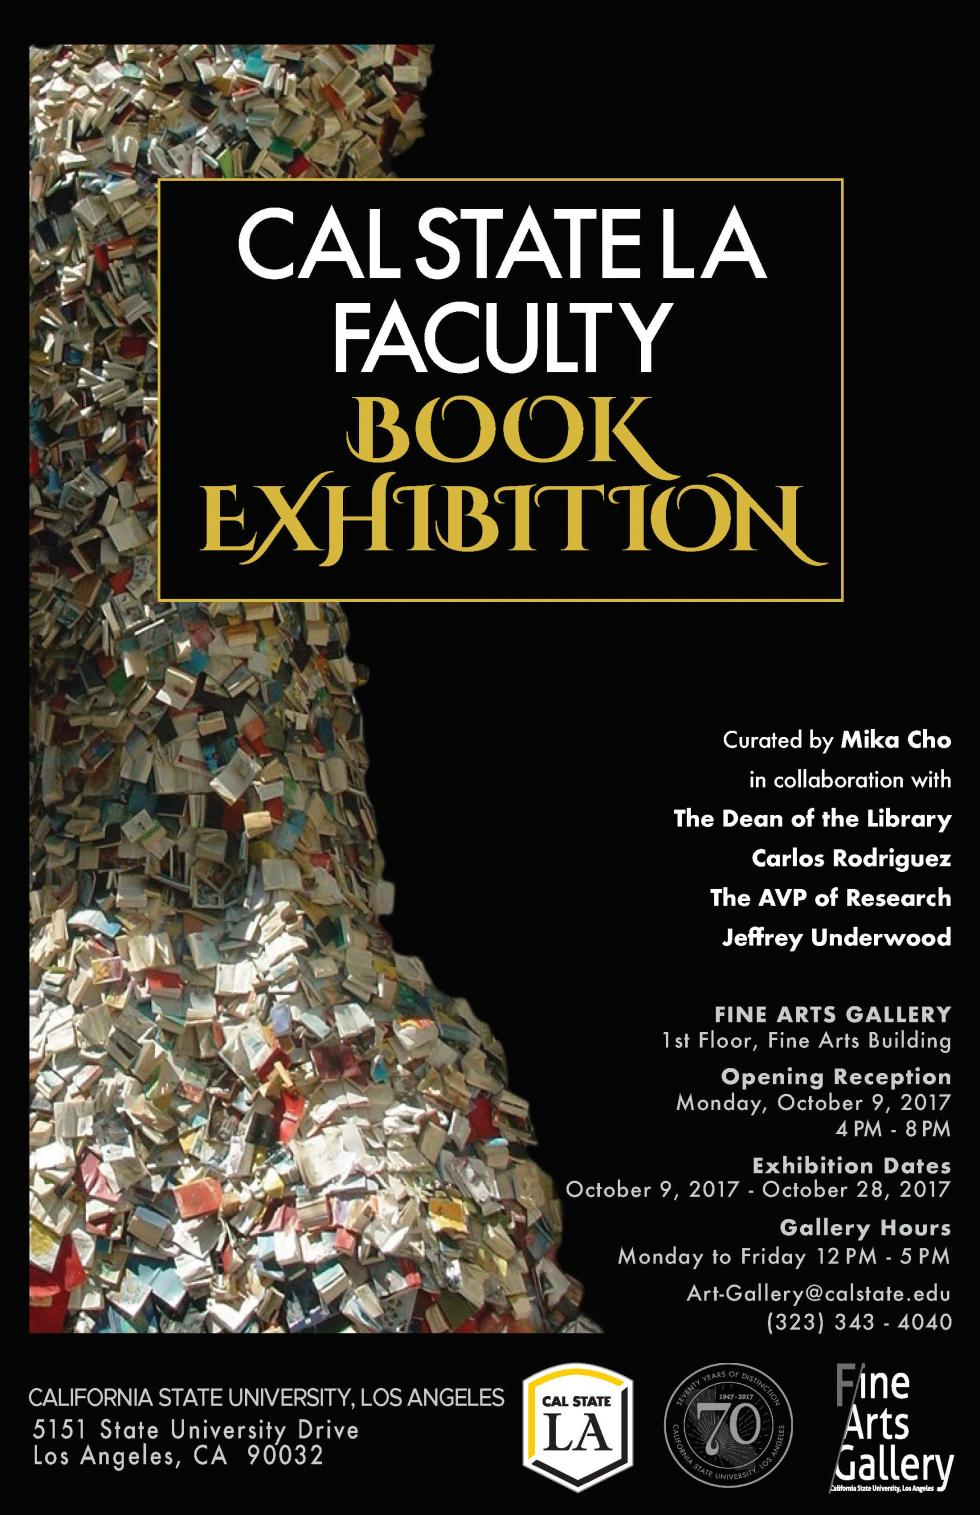 Cal State LA Faculty Book Exhibition